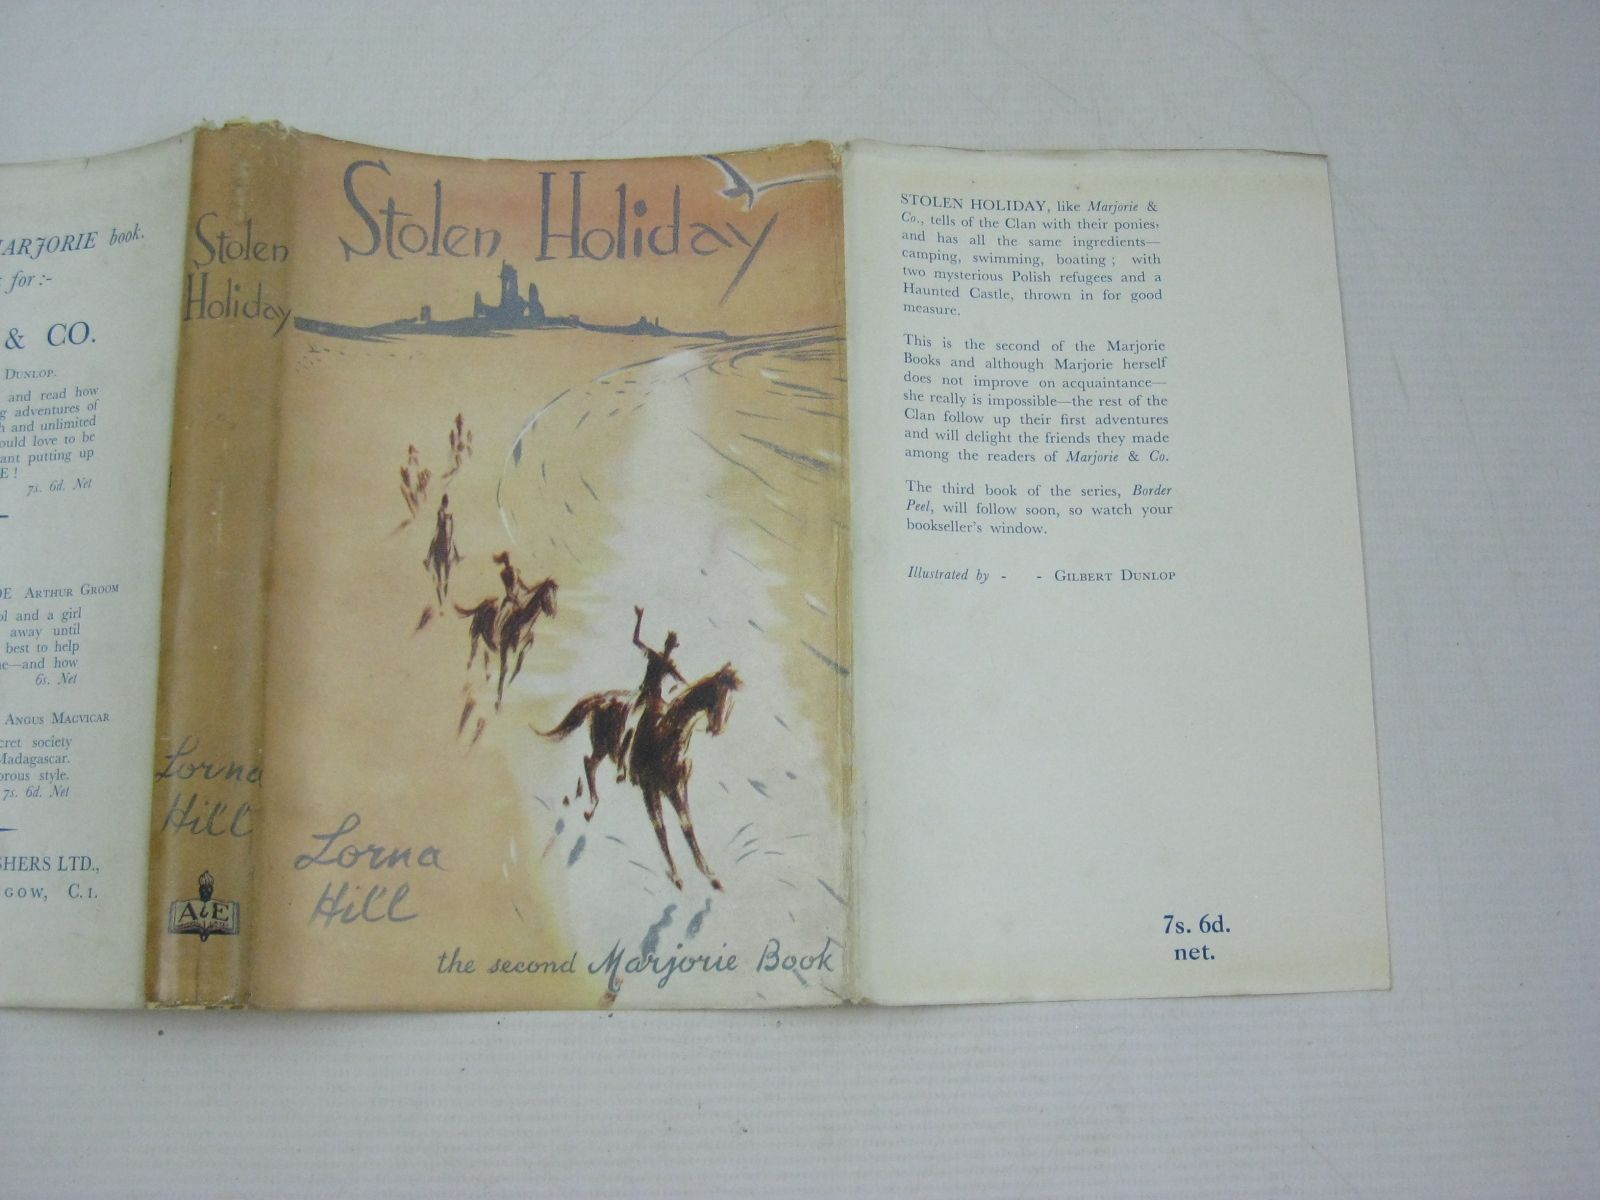 Photo of STOLEN HOLIDAY written by Hill, Lorna illustrated by Dunlop, Gilbert published by A. & E. Publishers Ltd. (STOCK CODE: 1404283)  for sale by Stella & Rose's Books